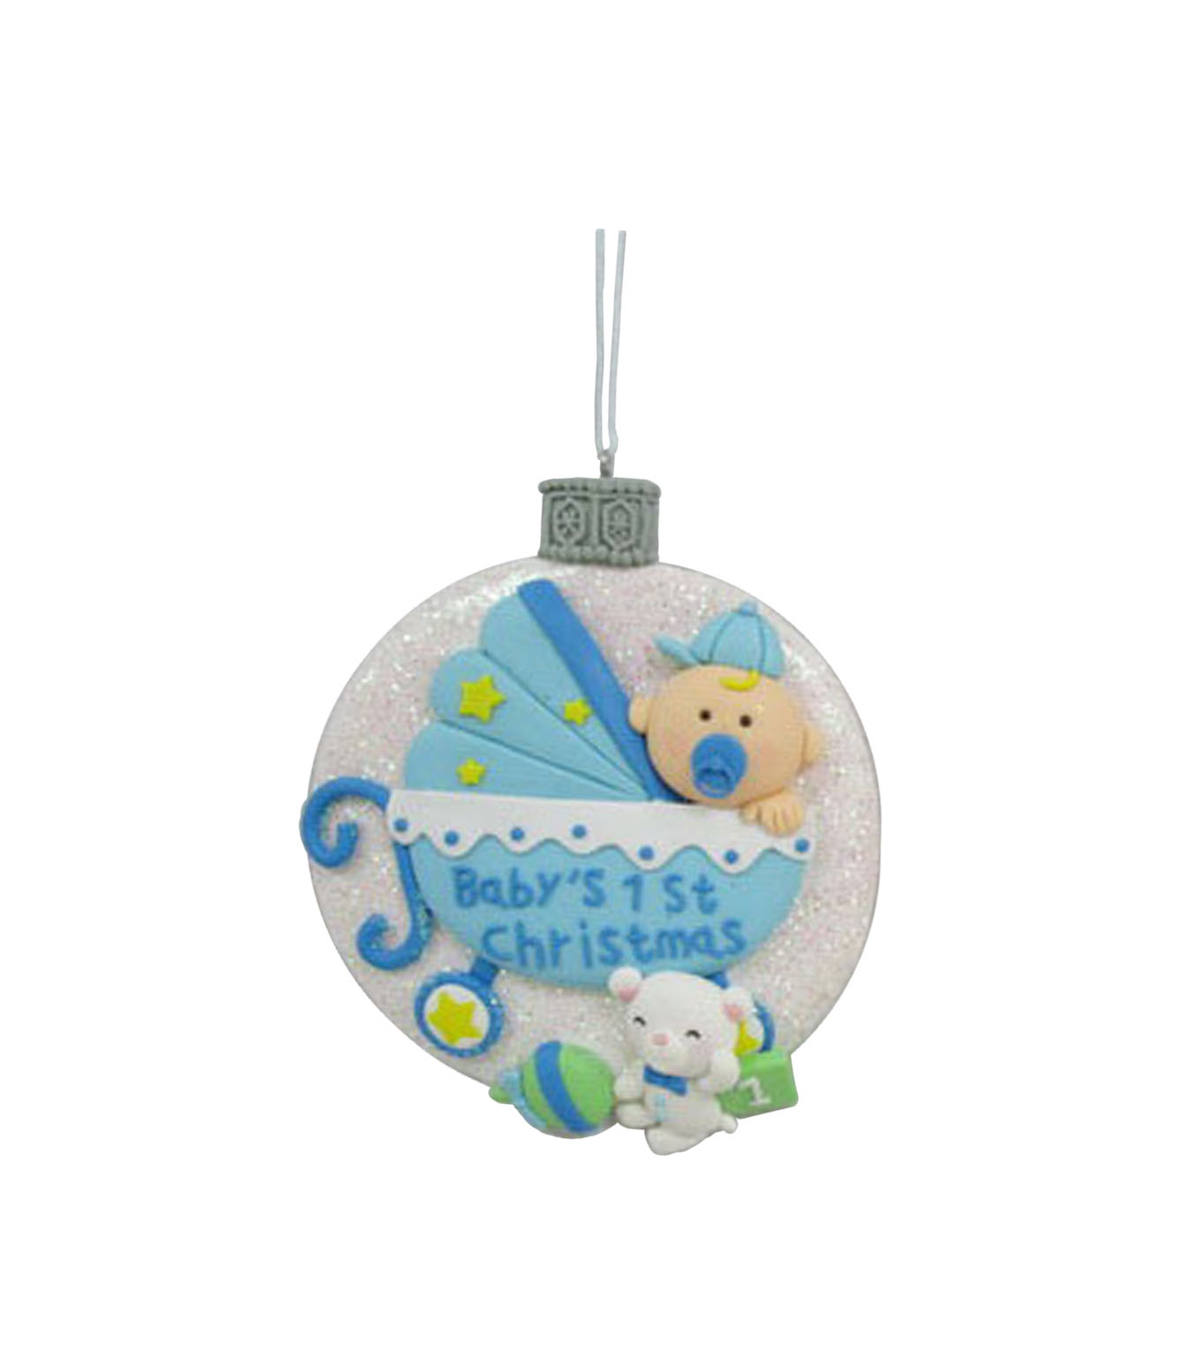 Maker's Holiday Baby Boy's First Christmas Ornament